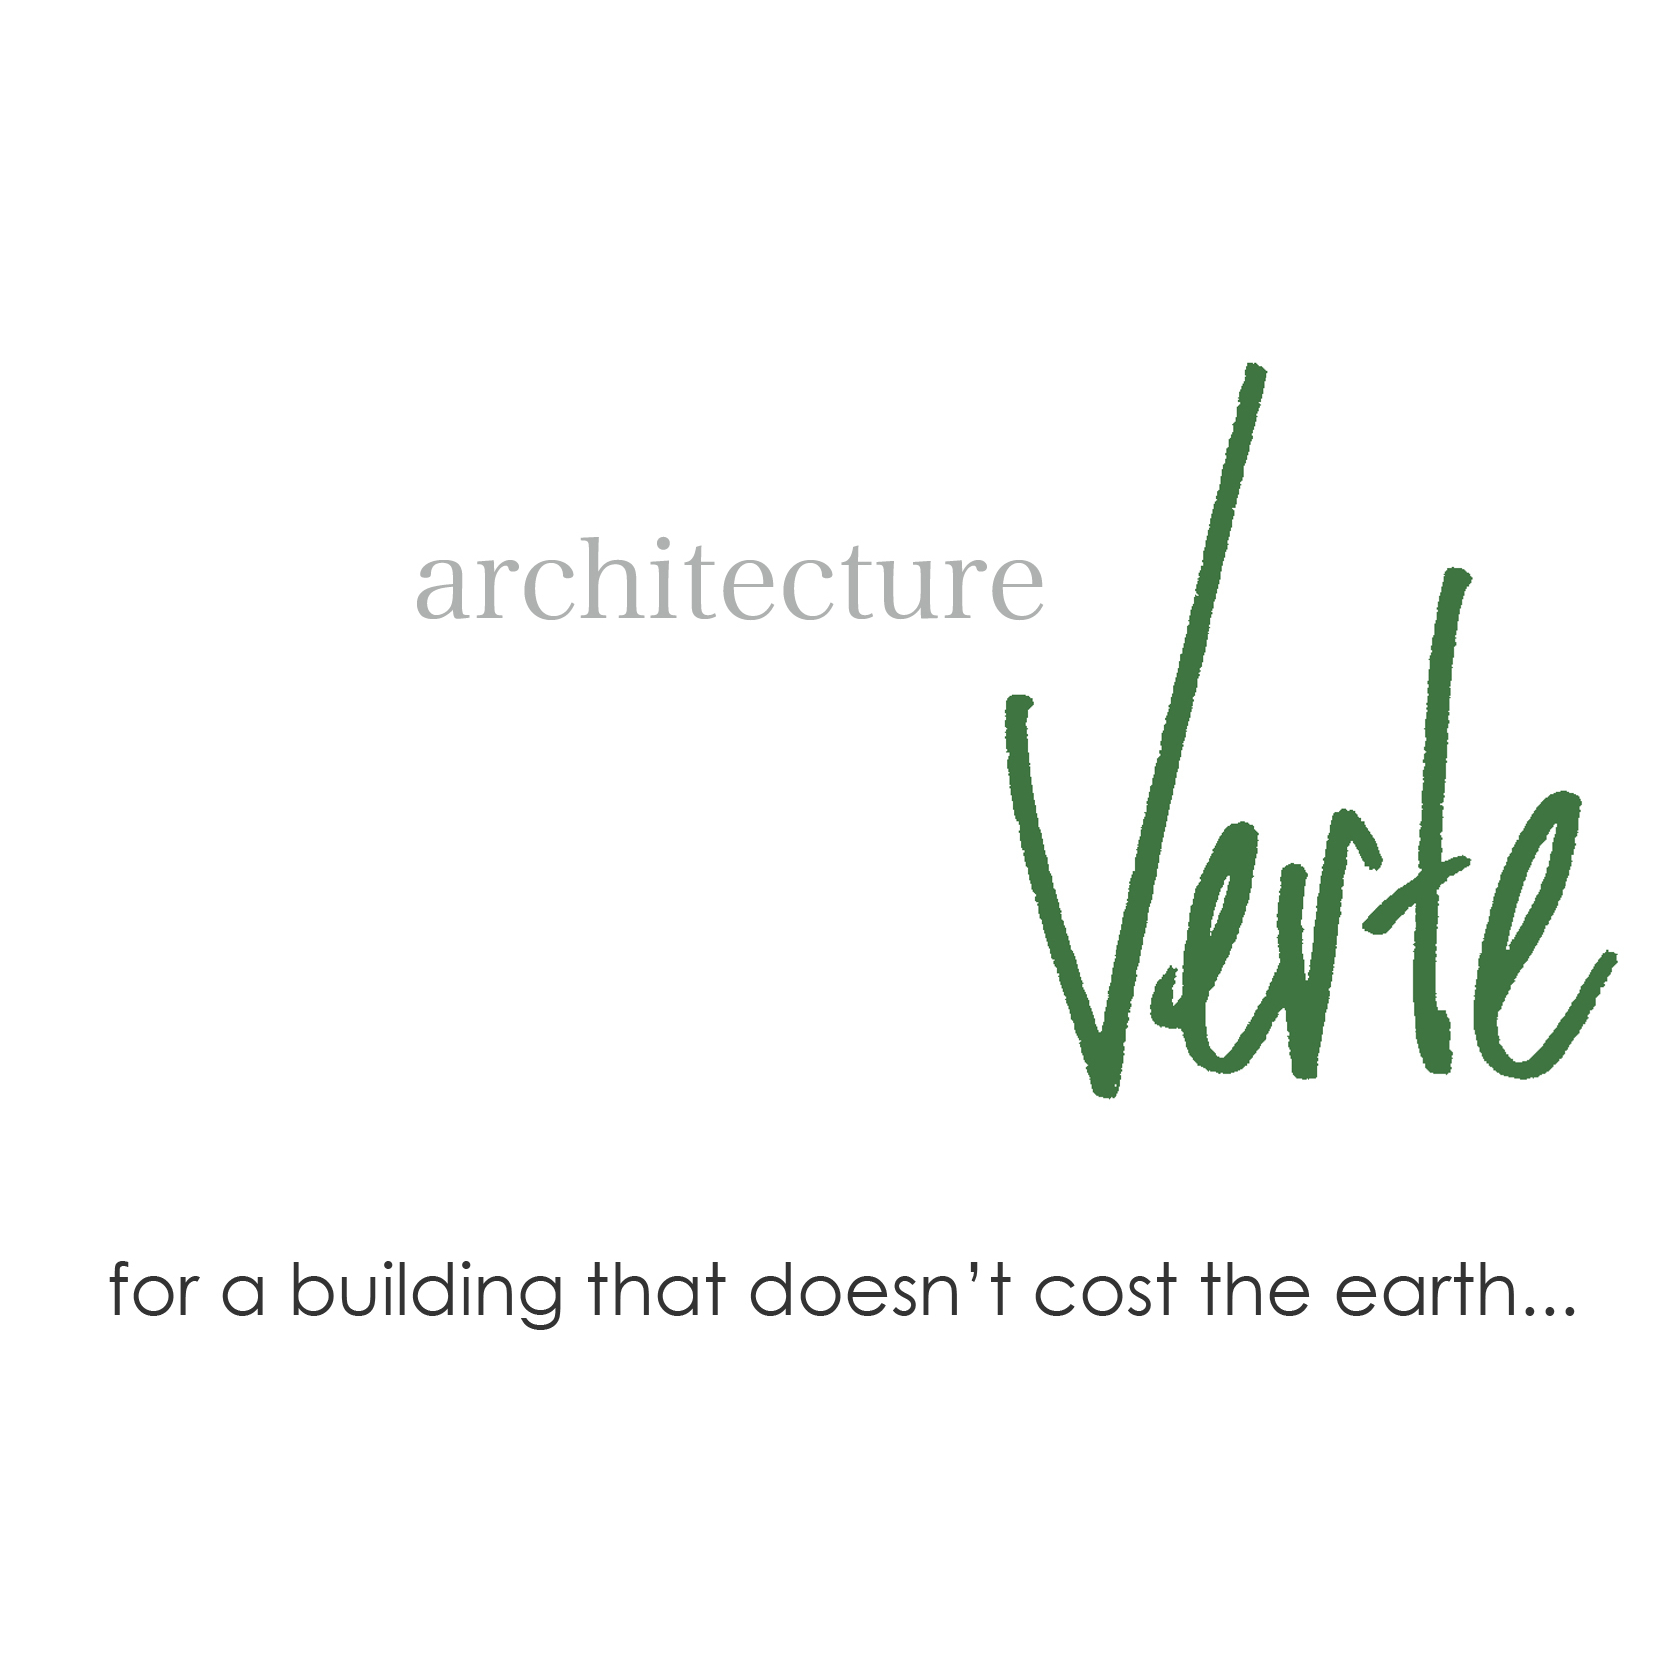 architecture verte architects in devizes sn10 2eq